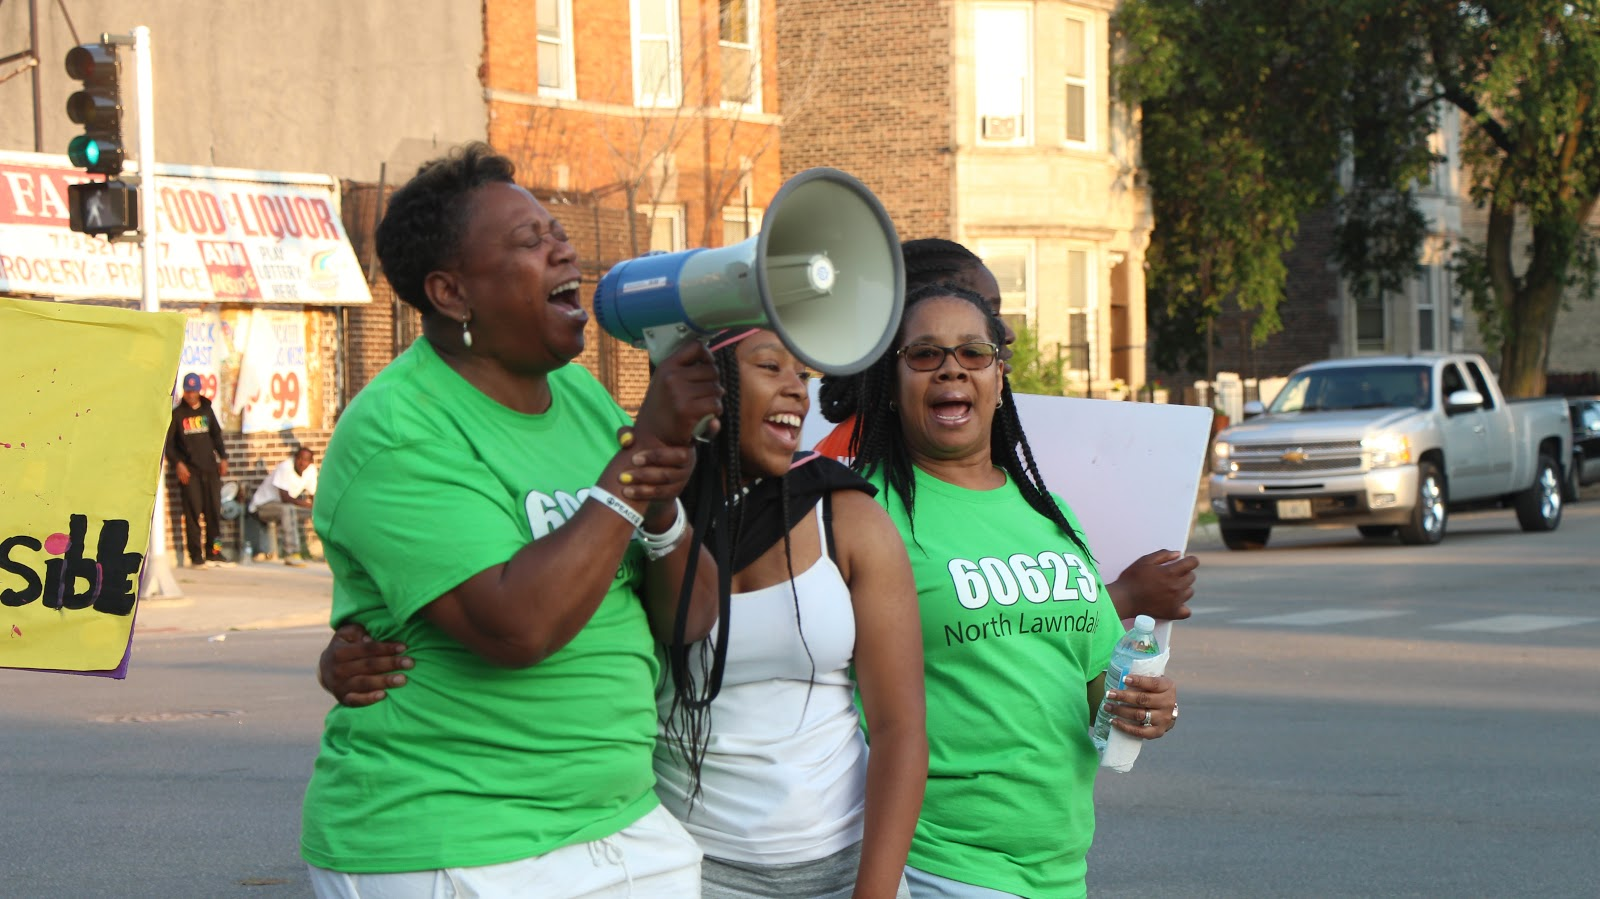 A Lawndale Resident expressing North Lawndale resident leading the march with powerful words. Photo by Tyrese Pough